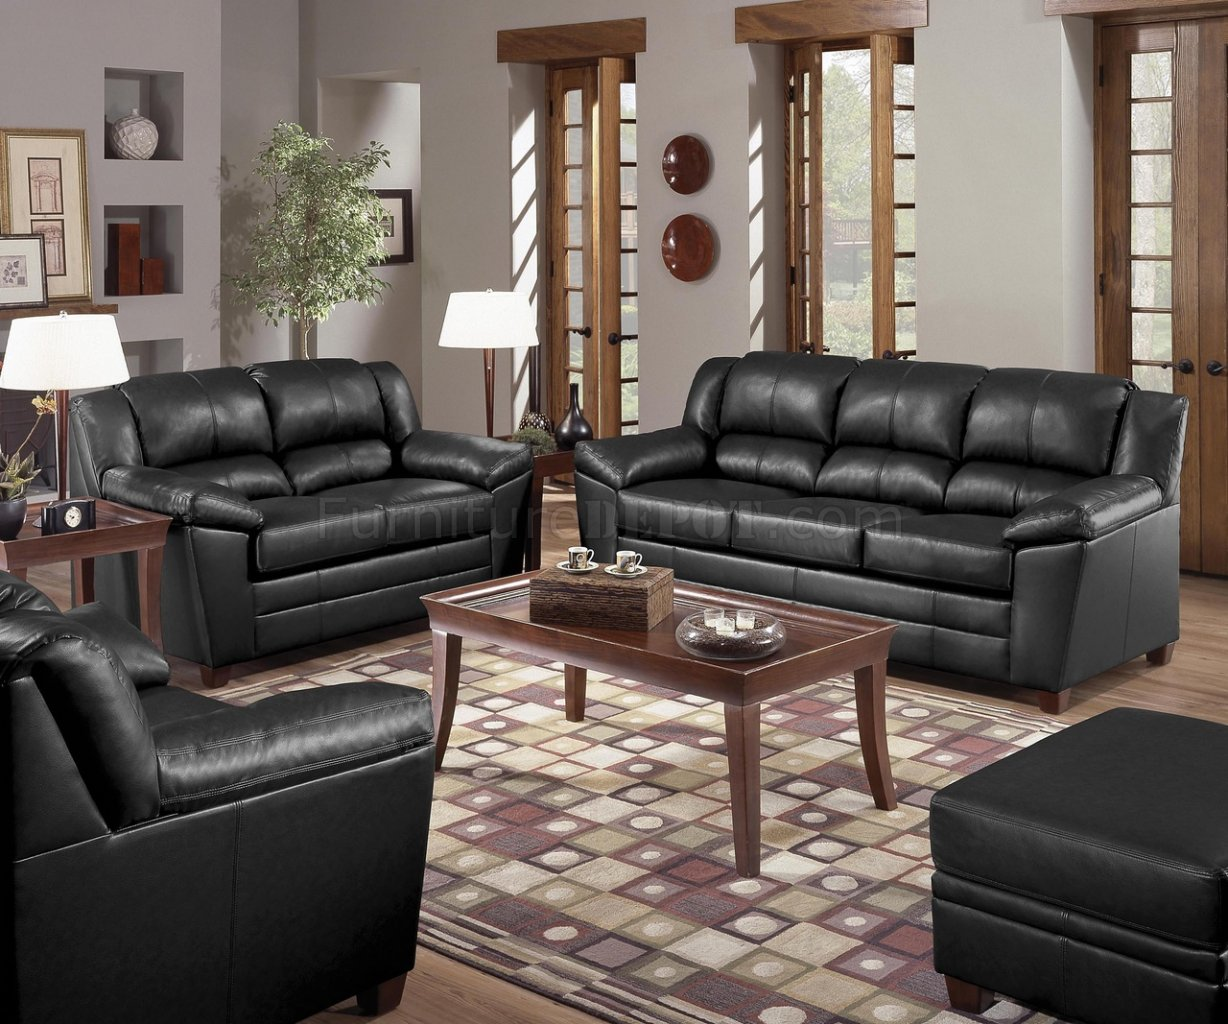 baseball leather sofa small loveseat black bonded living room w stitch seams